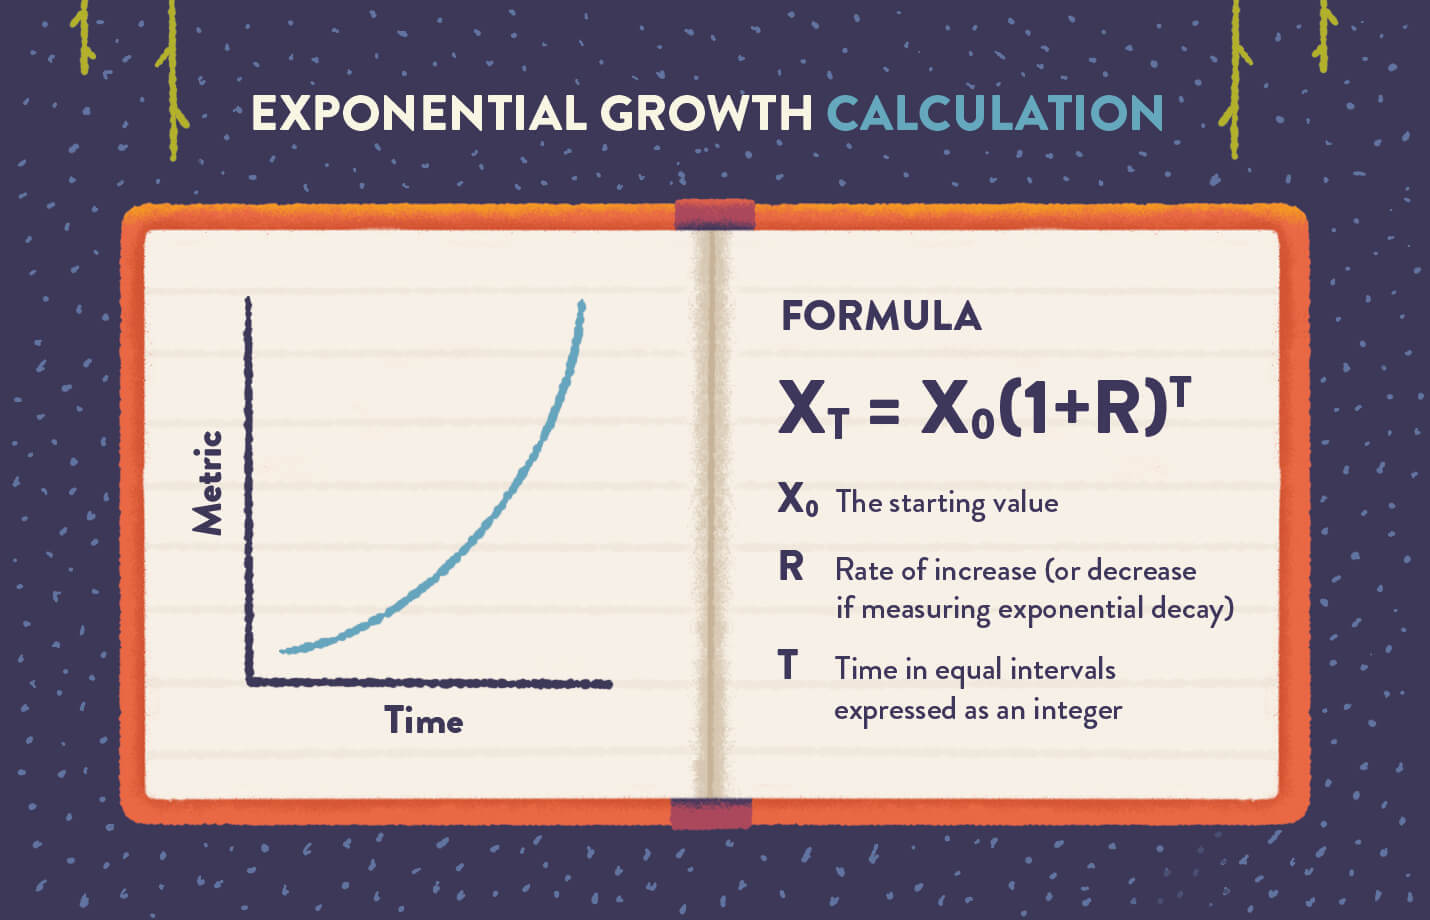 exponential growth formula with graph and variables explained